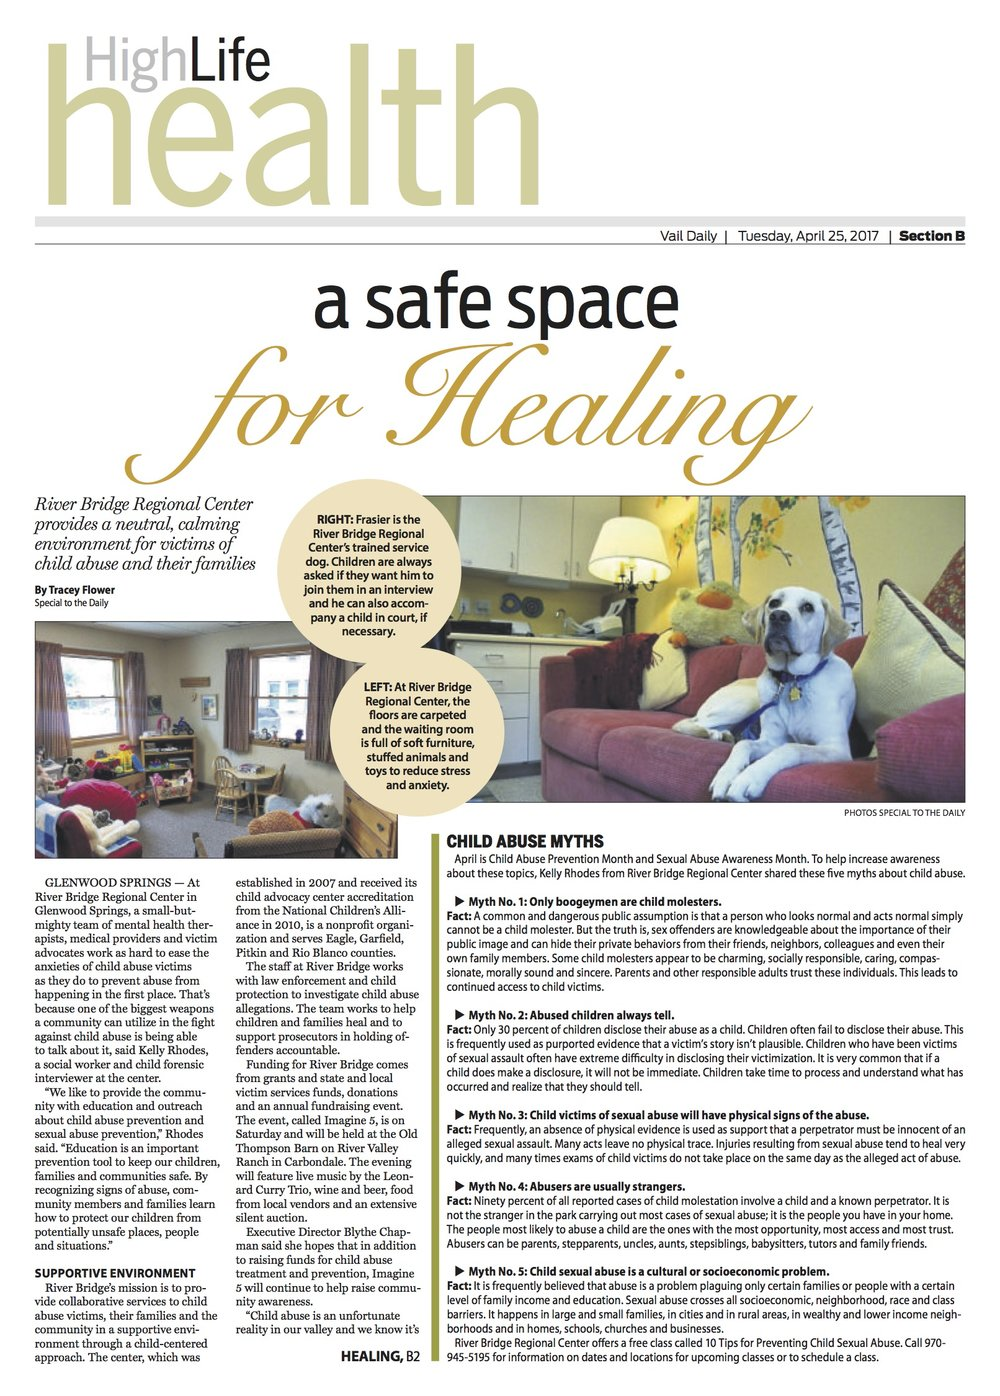 A safe space for healing   // Vail Daily // April 25, 2017